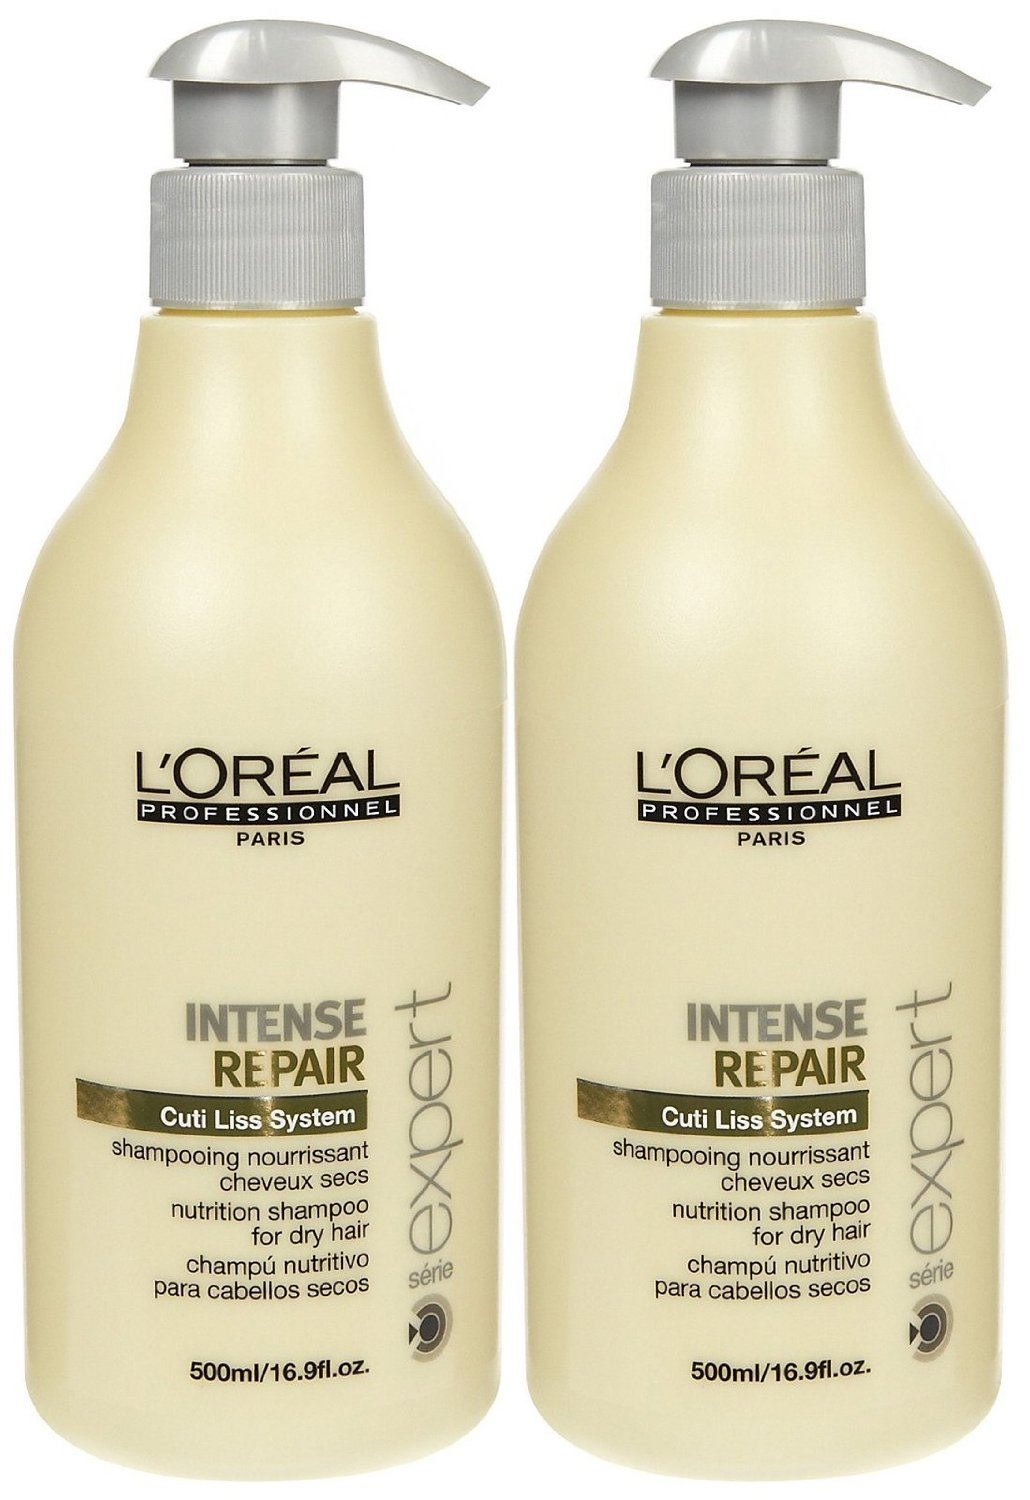 Cheap Loreal Intense Repair Shampoo Find Fall Get Quotations Professional Serie Expert 169 Oz